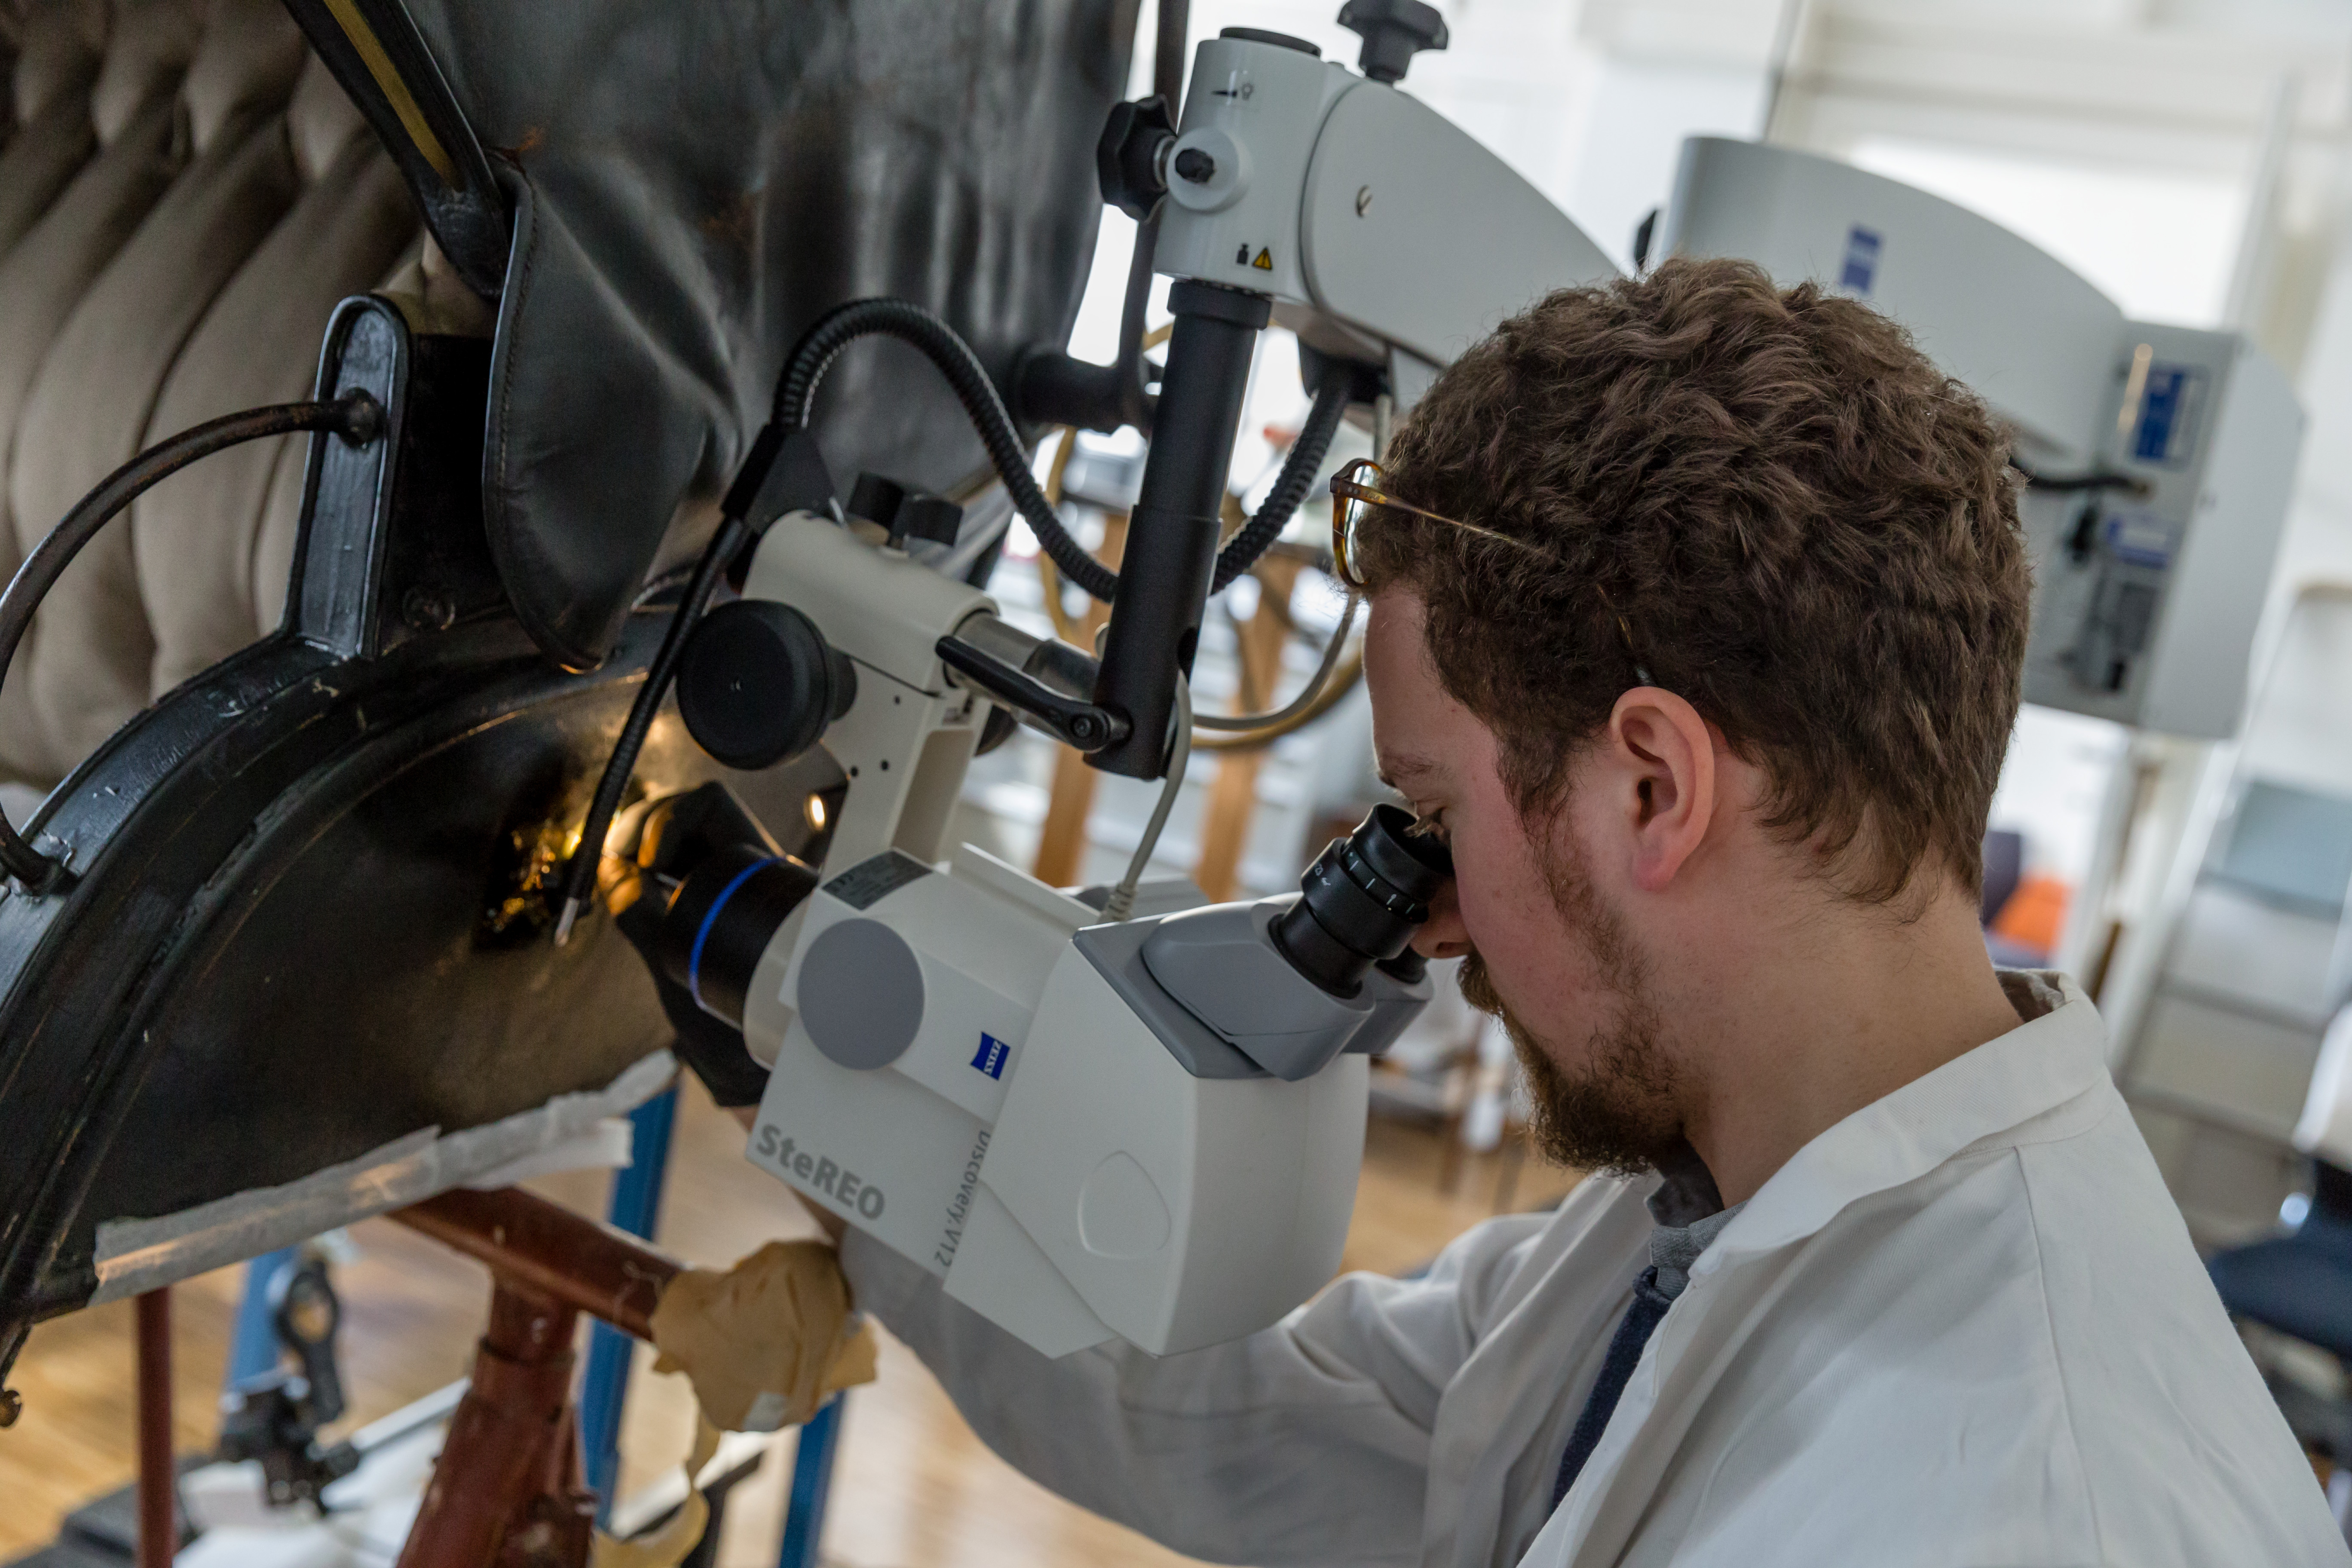 The conservation team at the Imperial Carriage Museum in Vienna